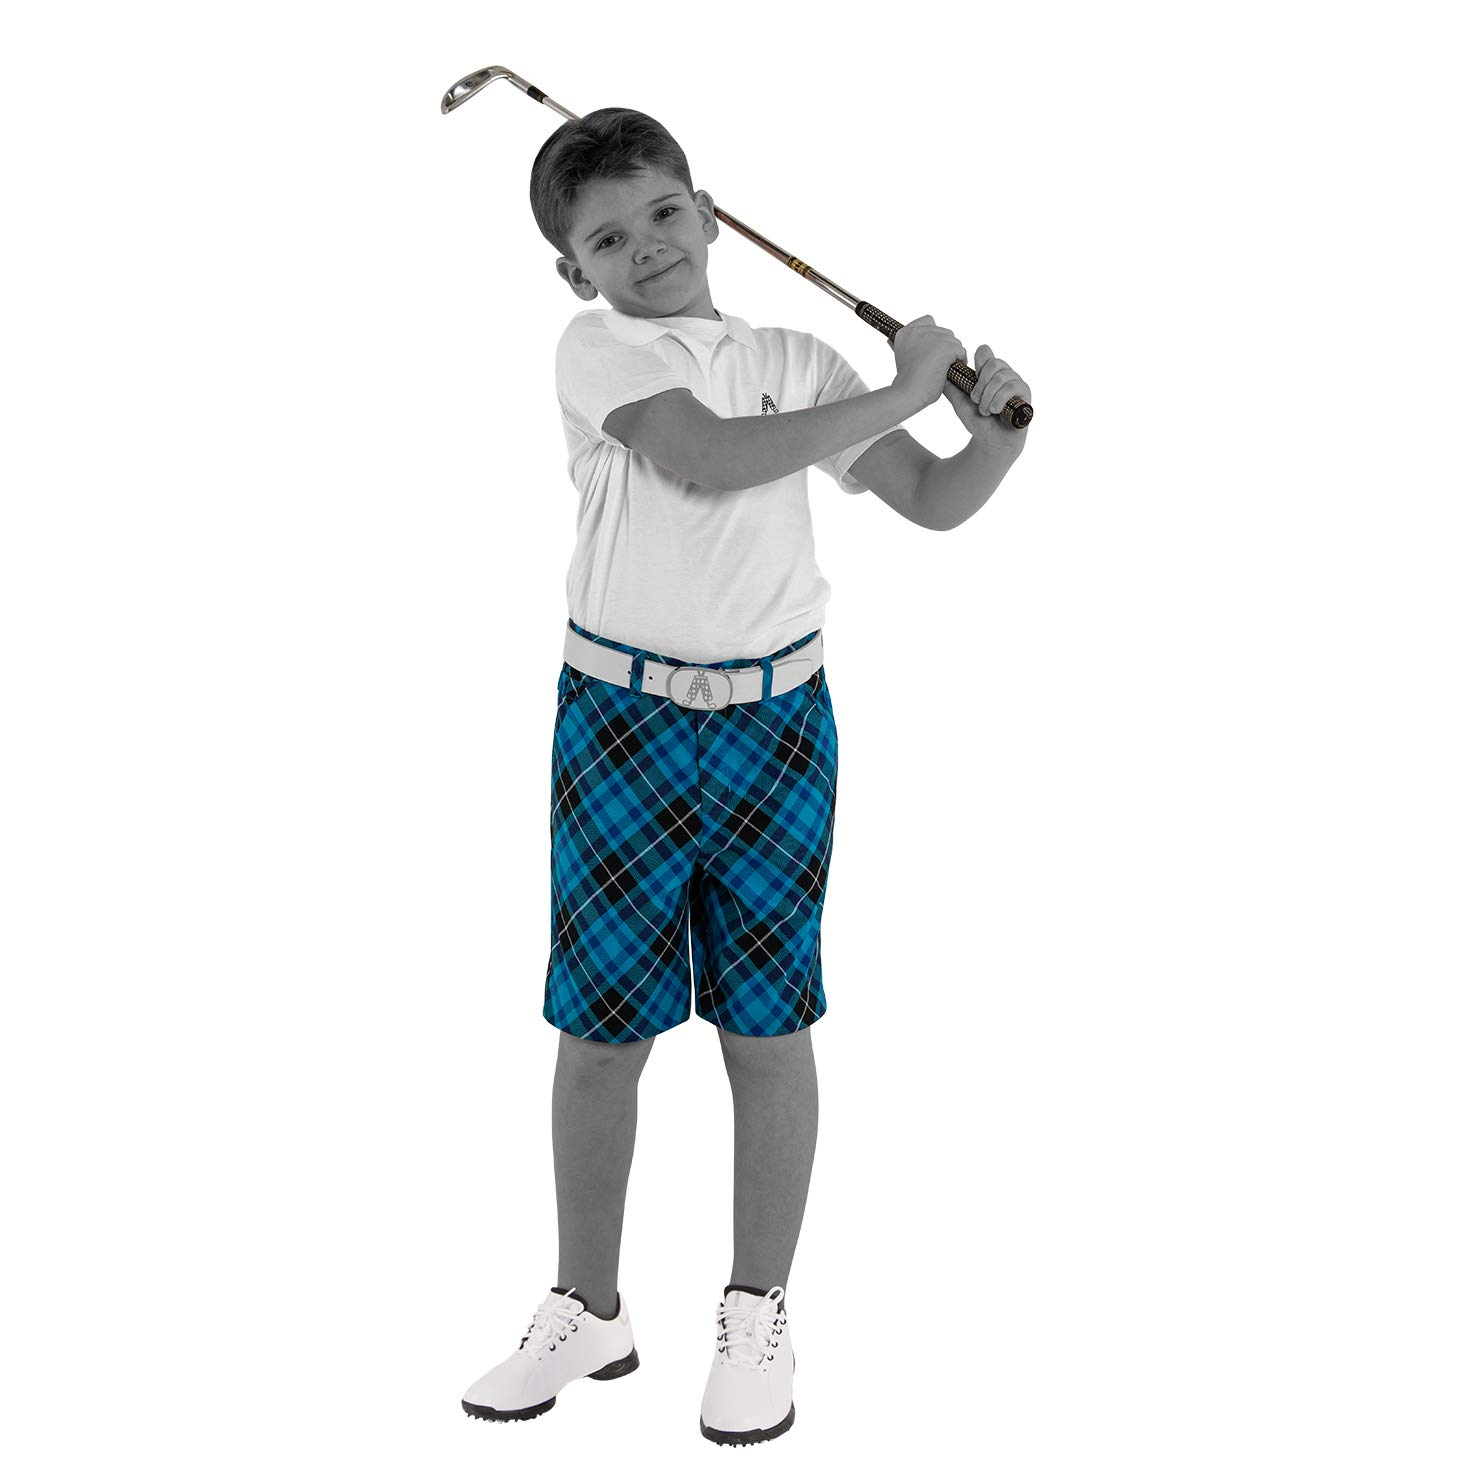 Royal & Awesome Kids Blue Plaid Bright Golf Shorts - Medium Age 10-11 Years by Royal & Awesome